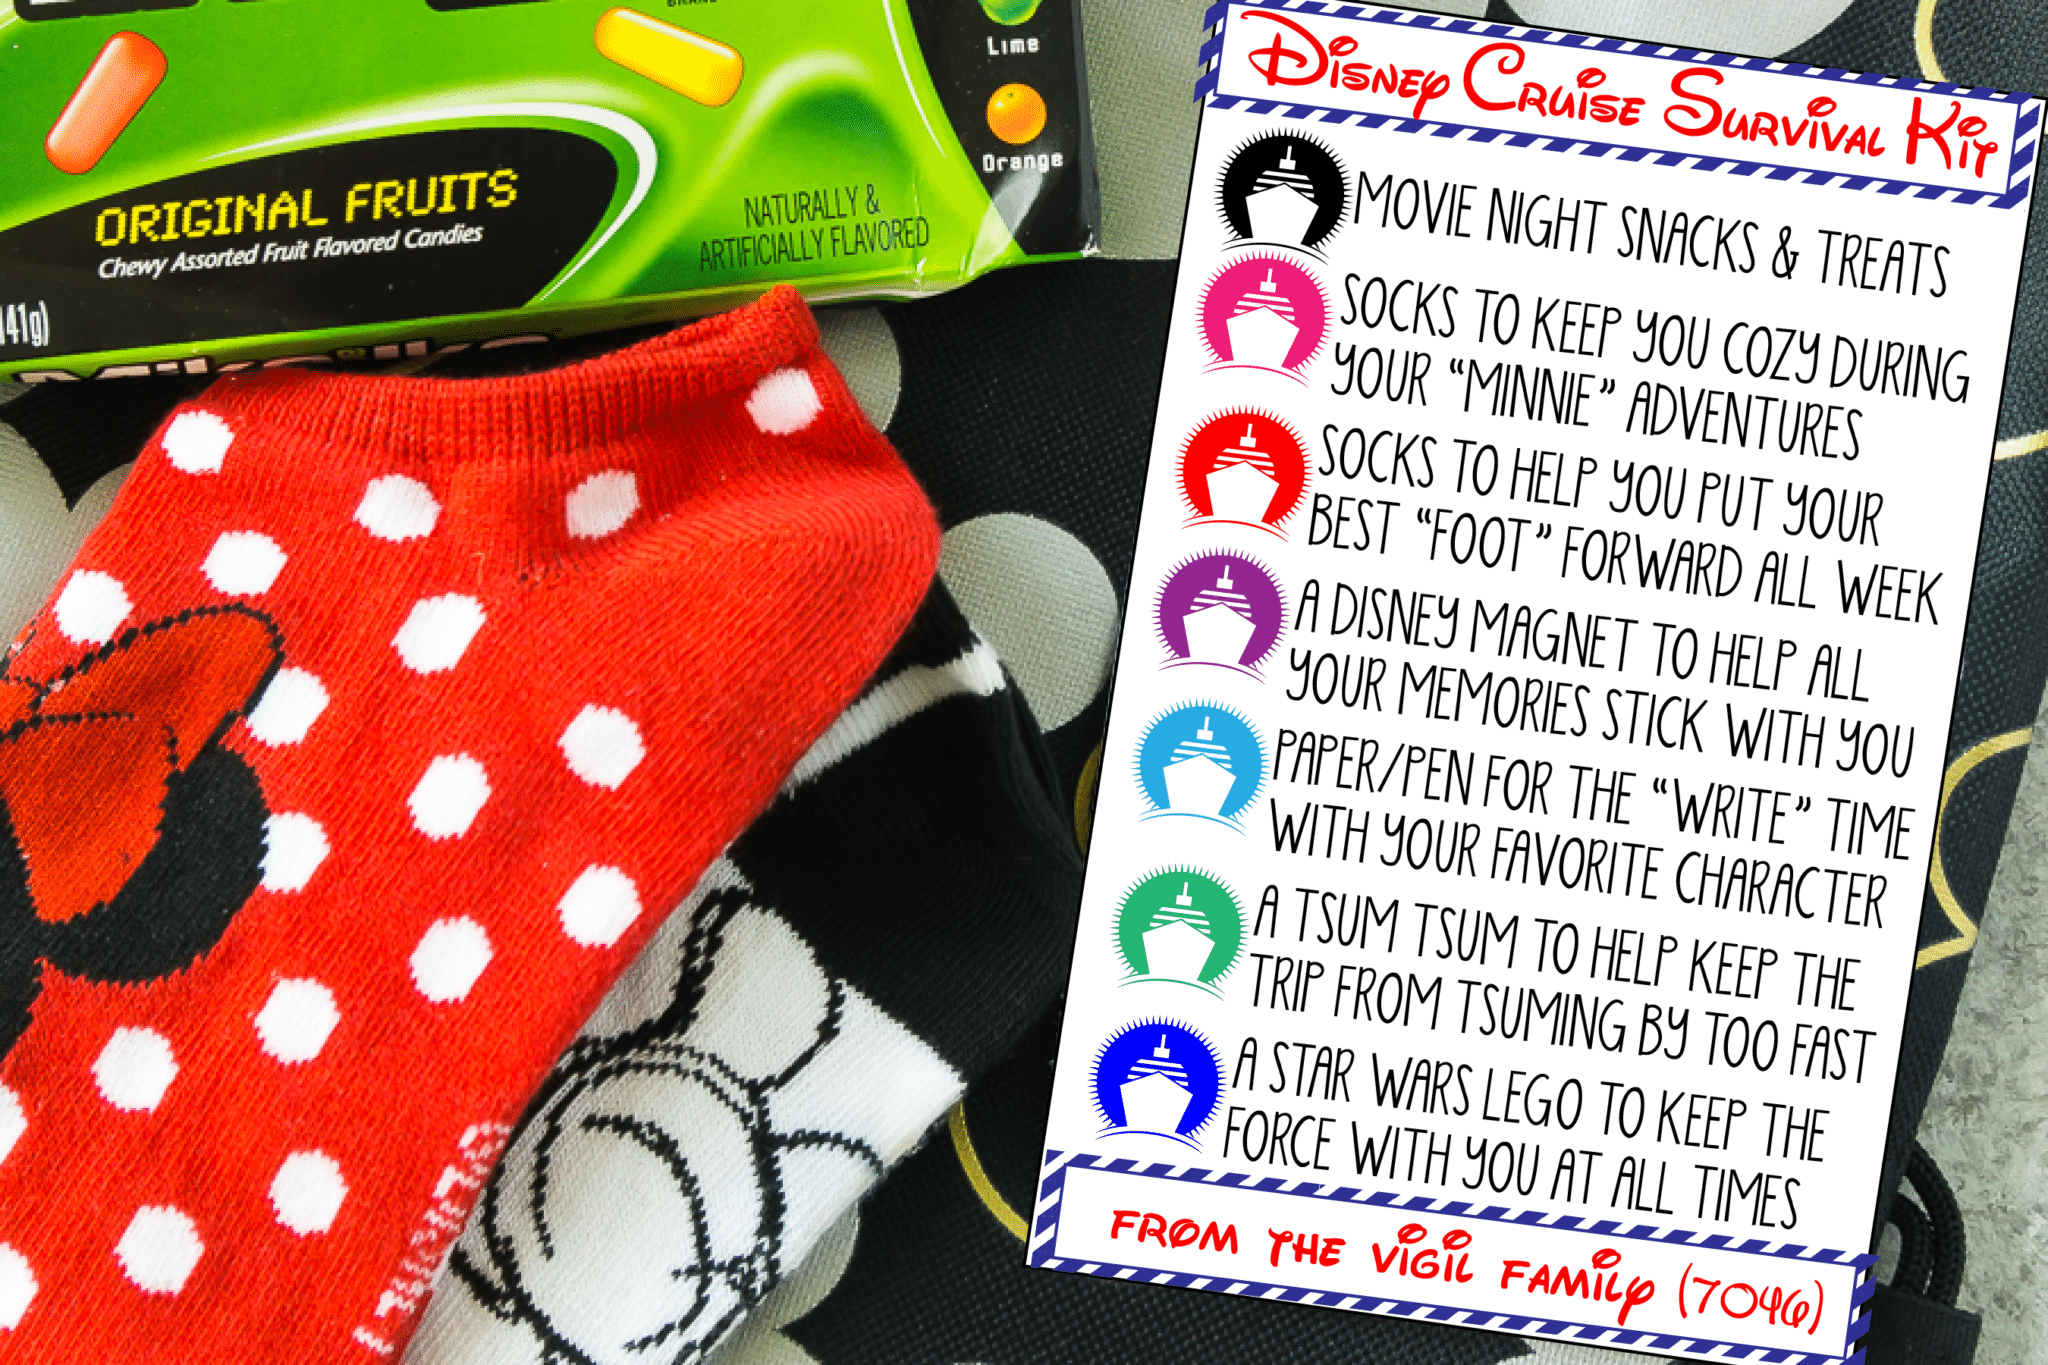 photograph regarding Disney Cruise Door Decorations Printable identify The Cutest Disney Fish Extender Presents with Absolutely free Printable Tags